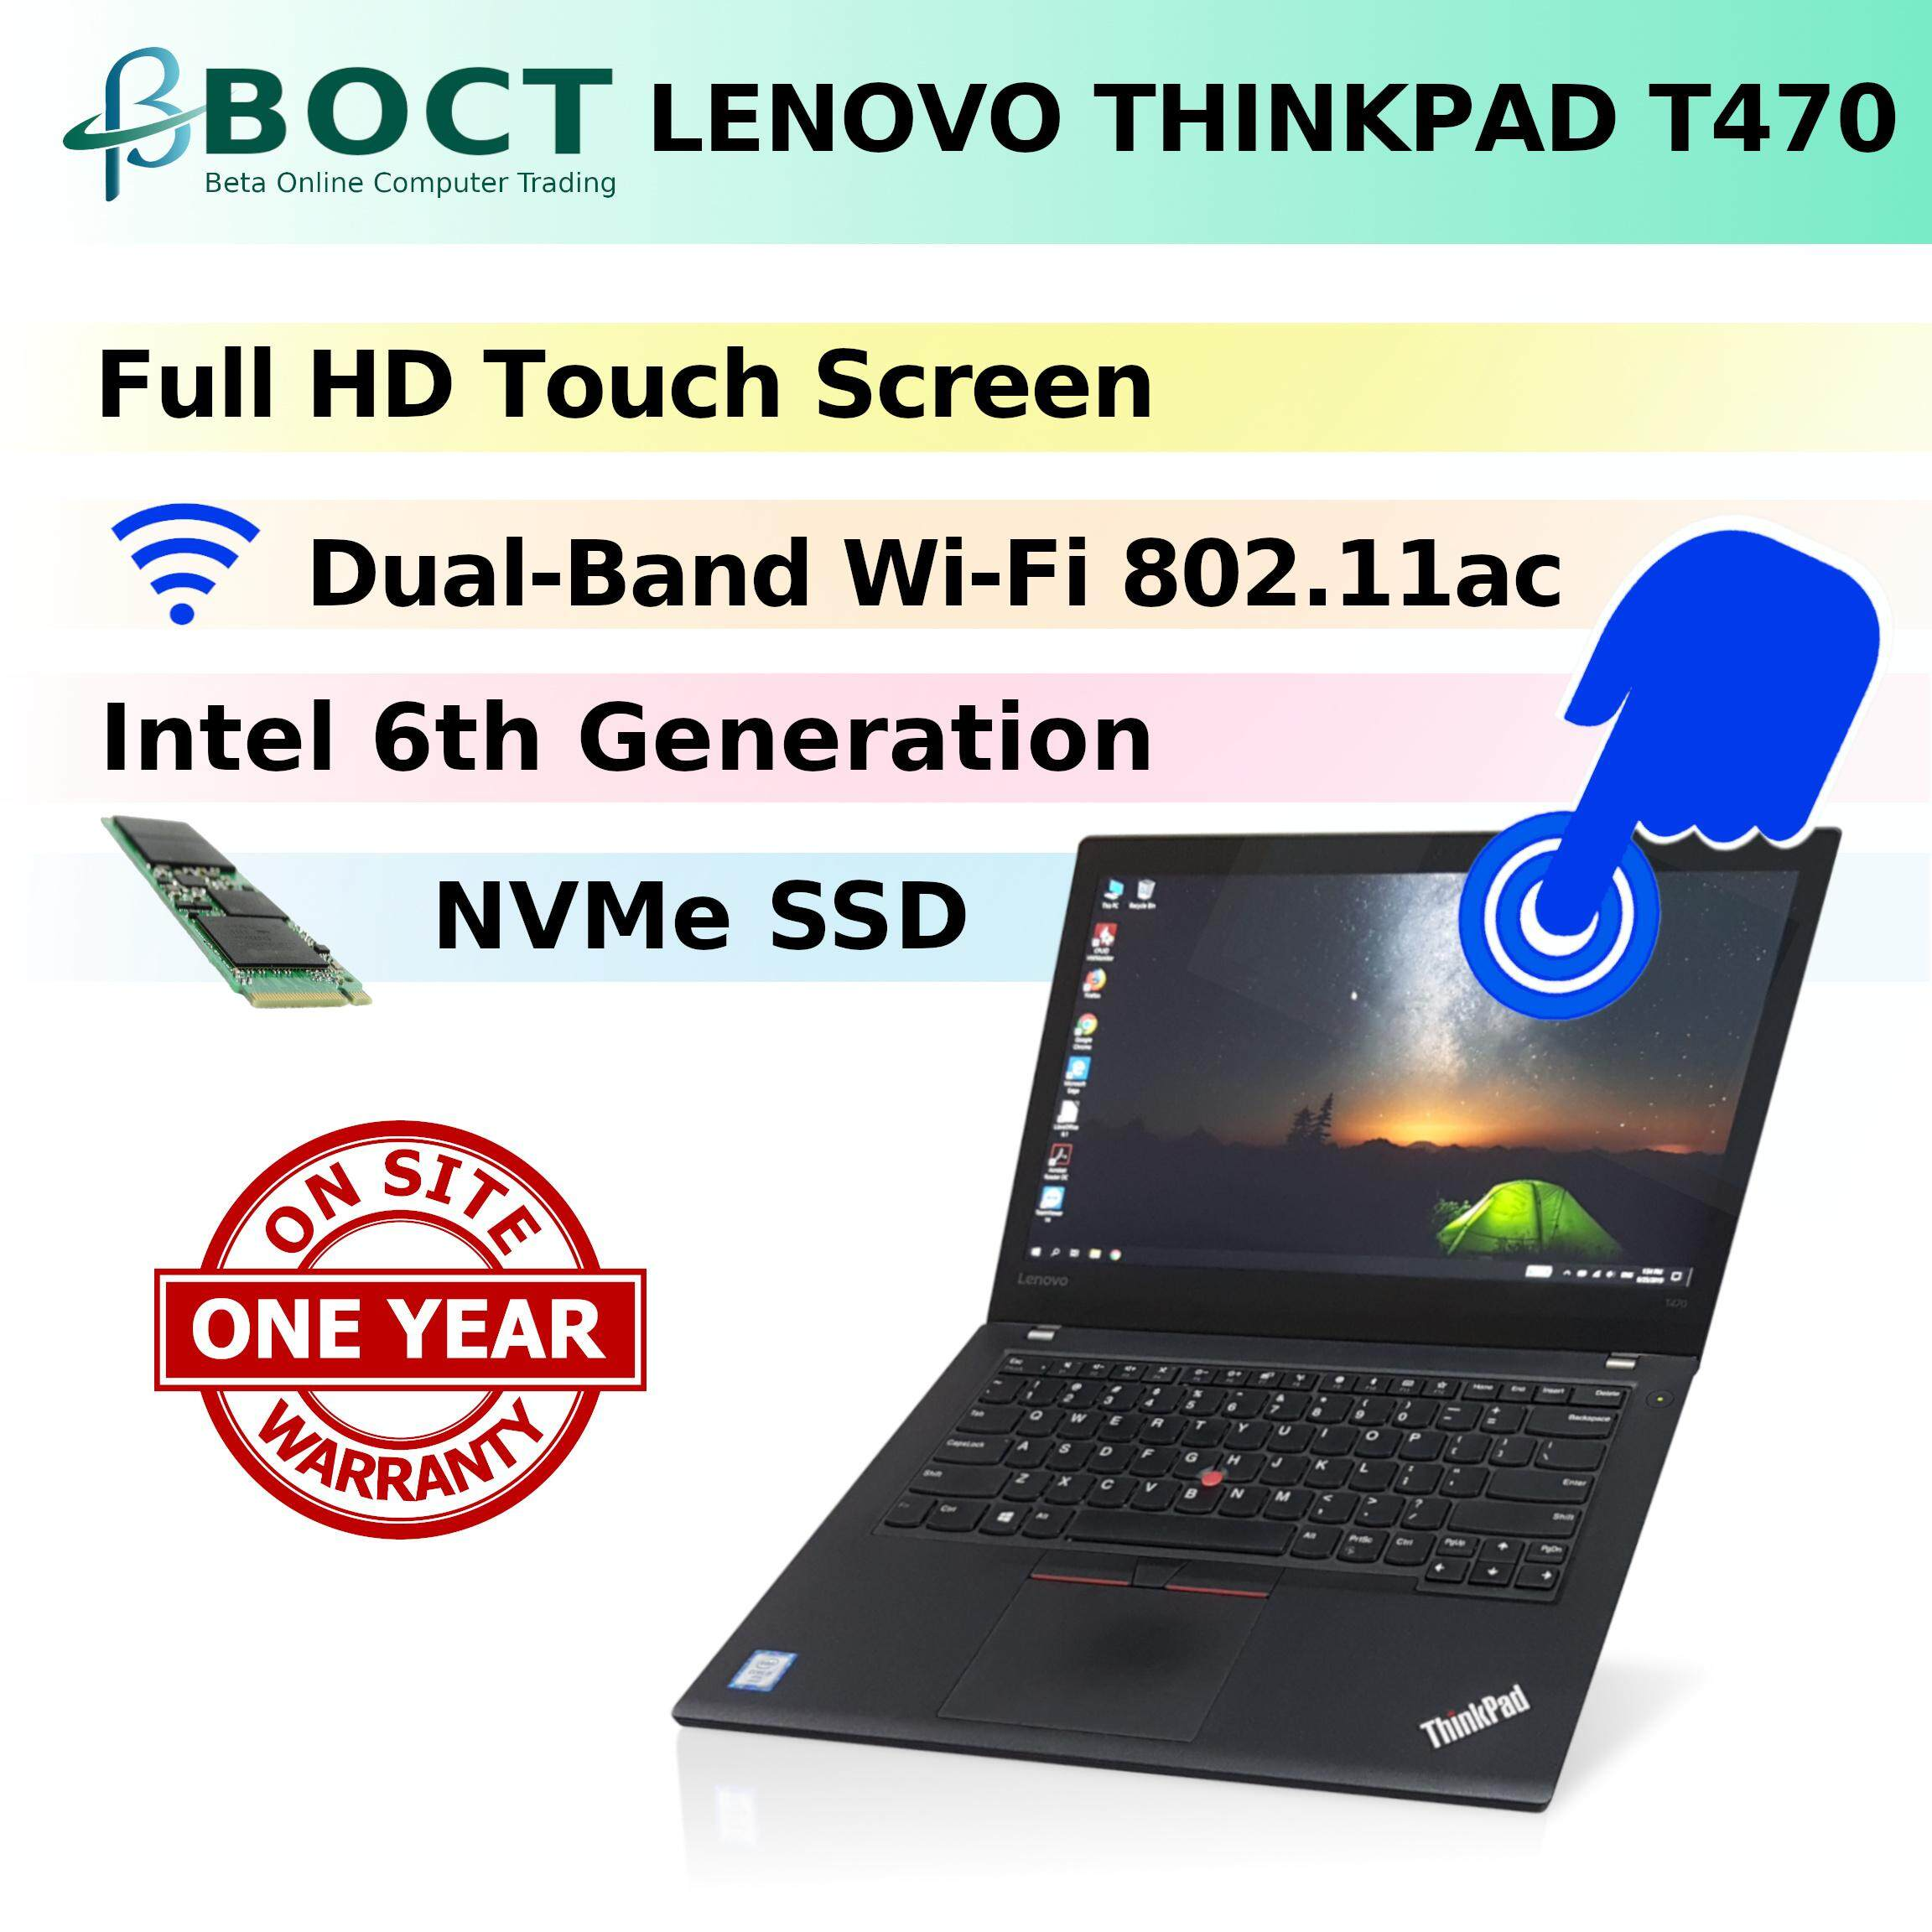 Business Class Lenovo ThinkPad T470 / Onsite Warranty until NOV 2020 / Touch Screen Full HD / Intel 6th Gen / NVMe SSD / Wireless Dual-Band AC / Windows 10 Pro (Refurbished) Malaysia